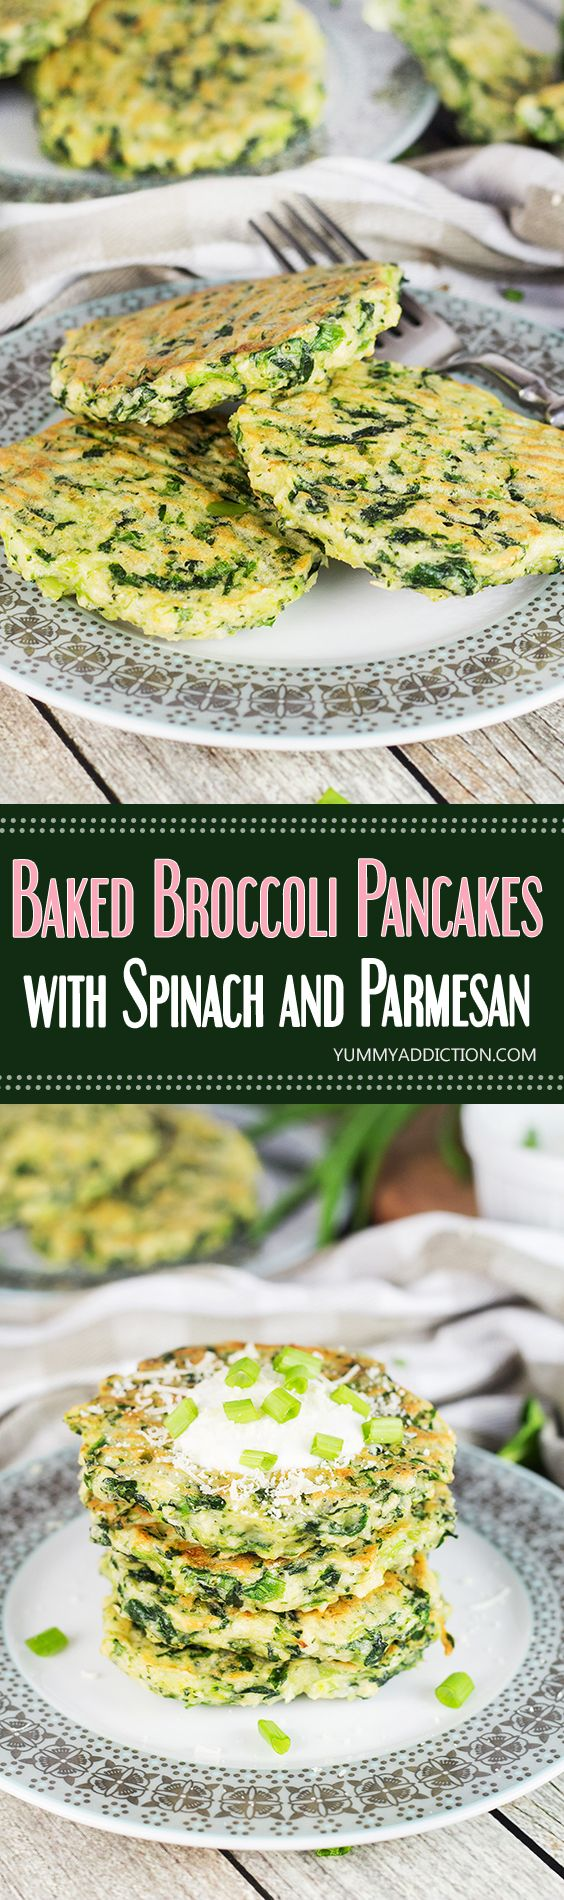 These spinach and Parmesan packed Broccoli Pancakes are so delicious that even those who are not too fond of this green veggie are going to love them!   yummyaddiction.com